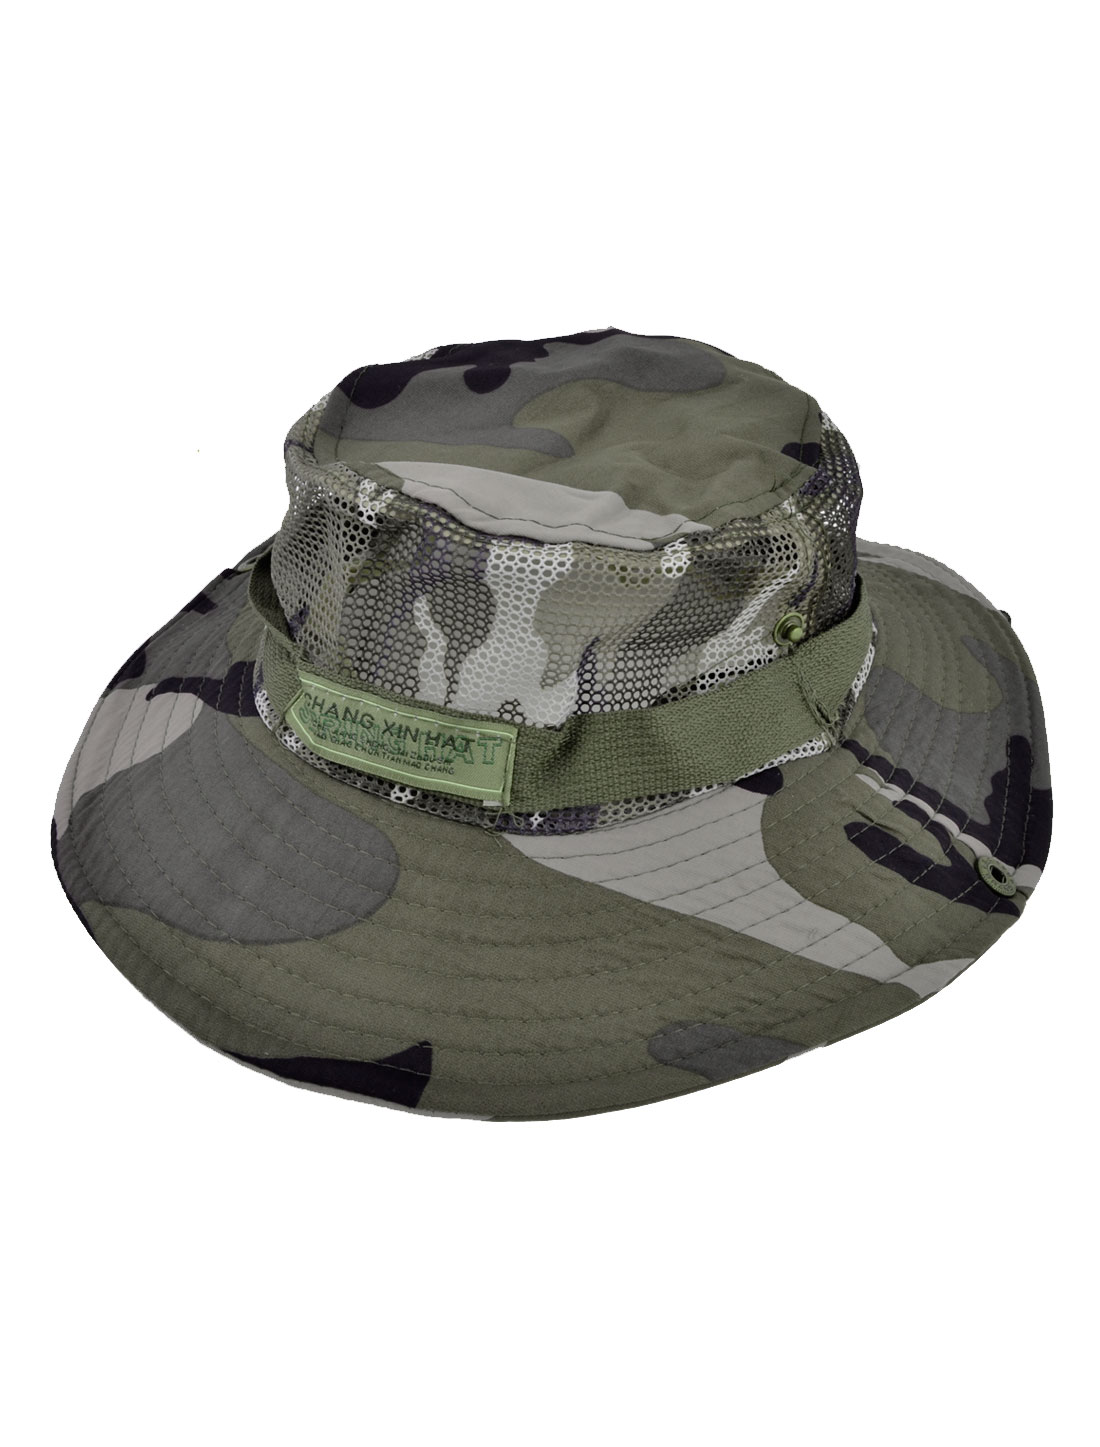 Men Camouflage Pattern Round Brim Military Mesh Bucket Sun Hat Cap Tricolor